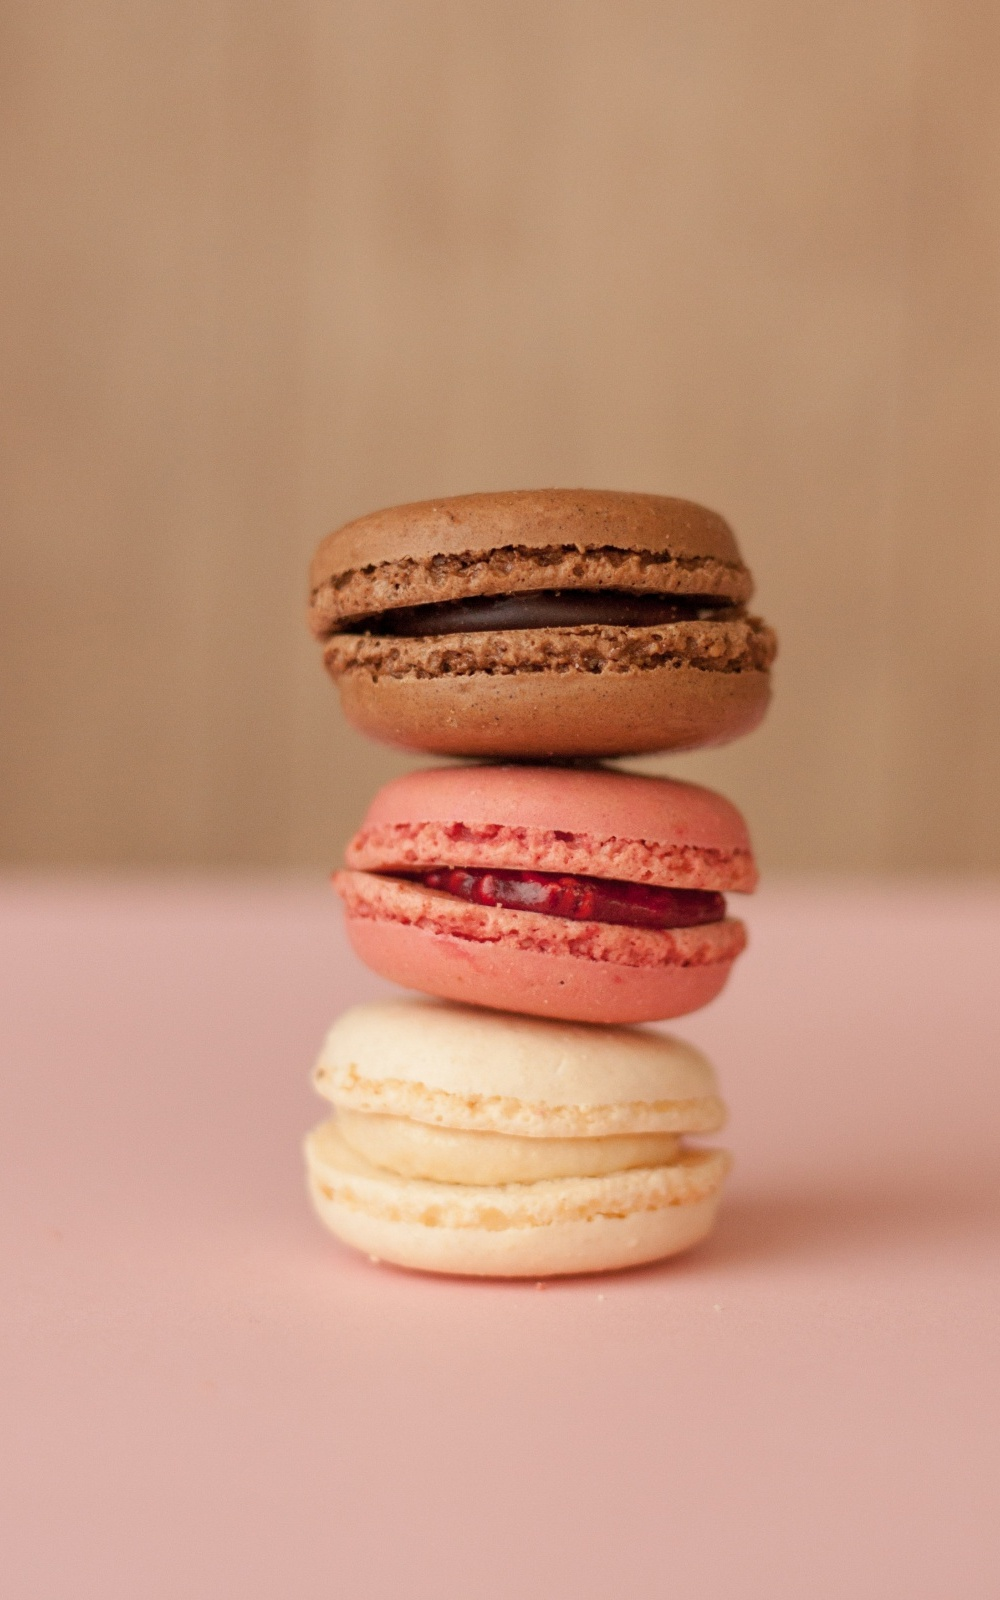 Food Dessert Sweet Macaroons Mobile Wallpaper